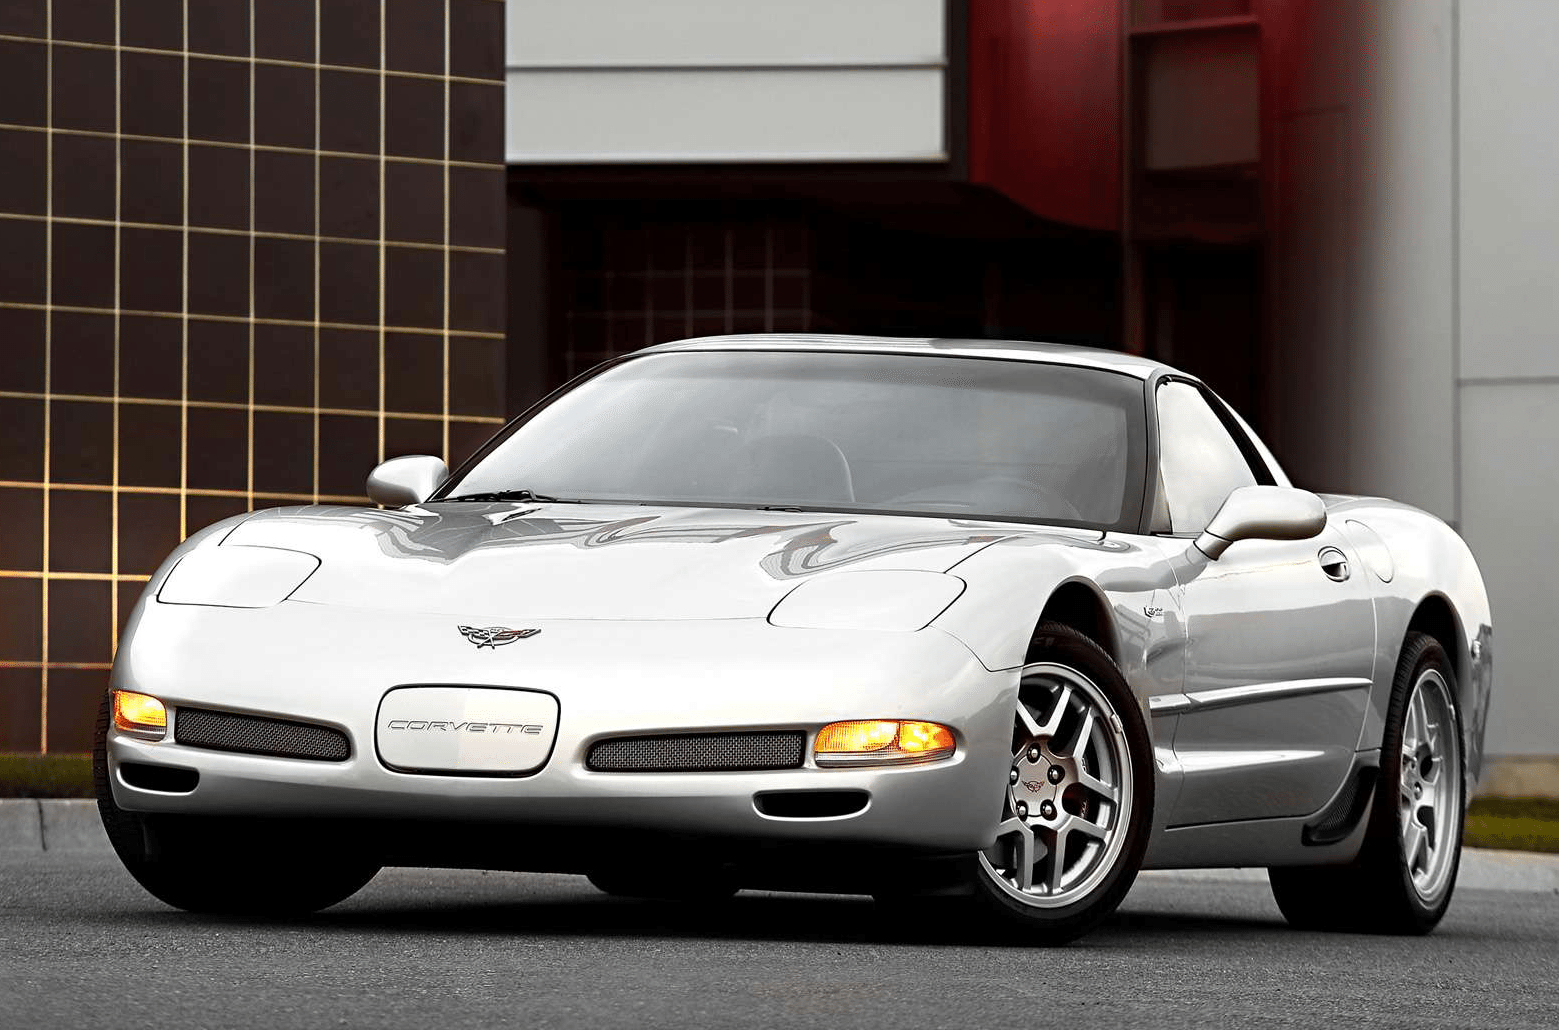 2002 c5 corvette image gallery pictures. Black Bedroom Furniture Sets. Home Design Ideas